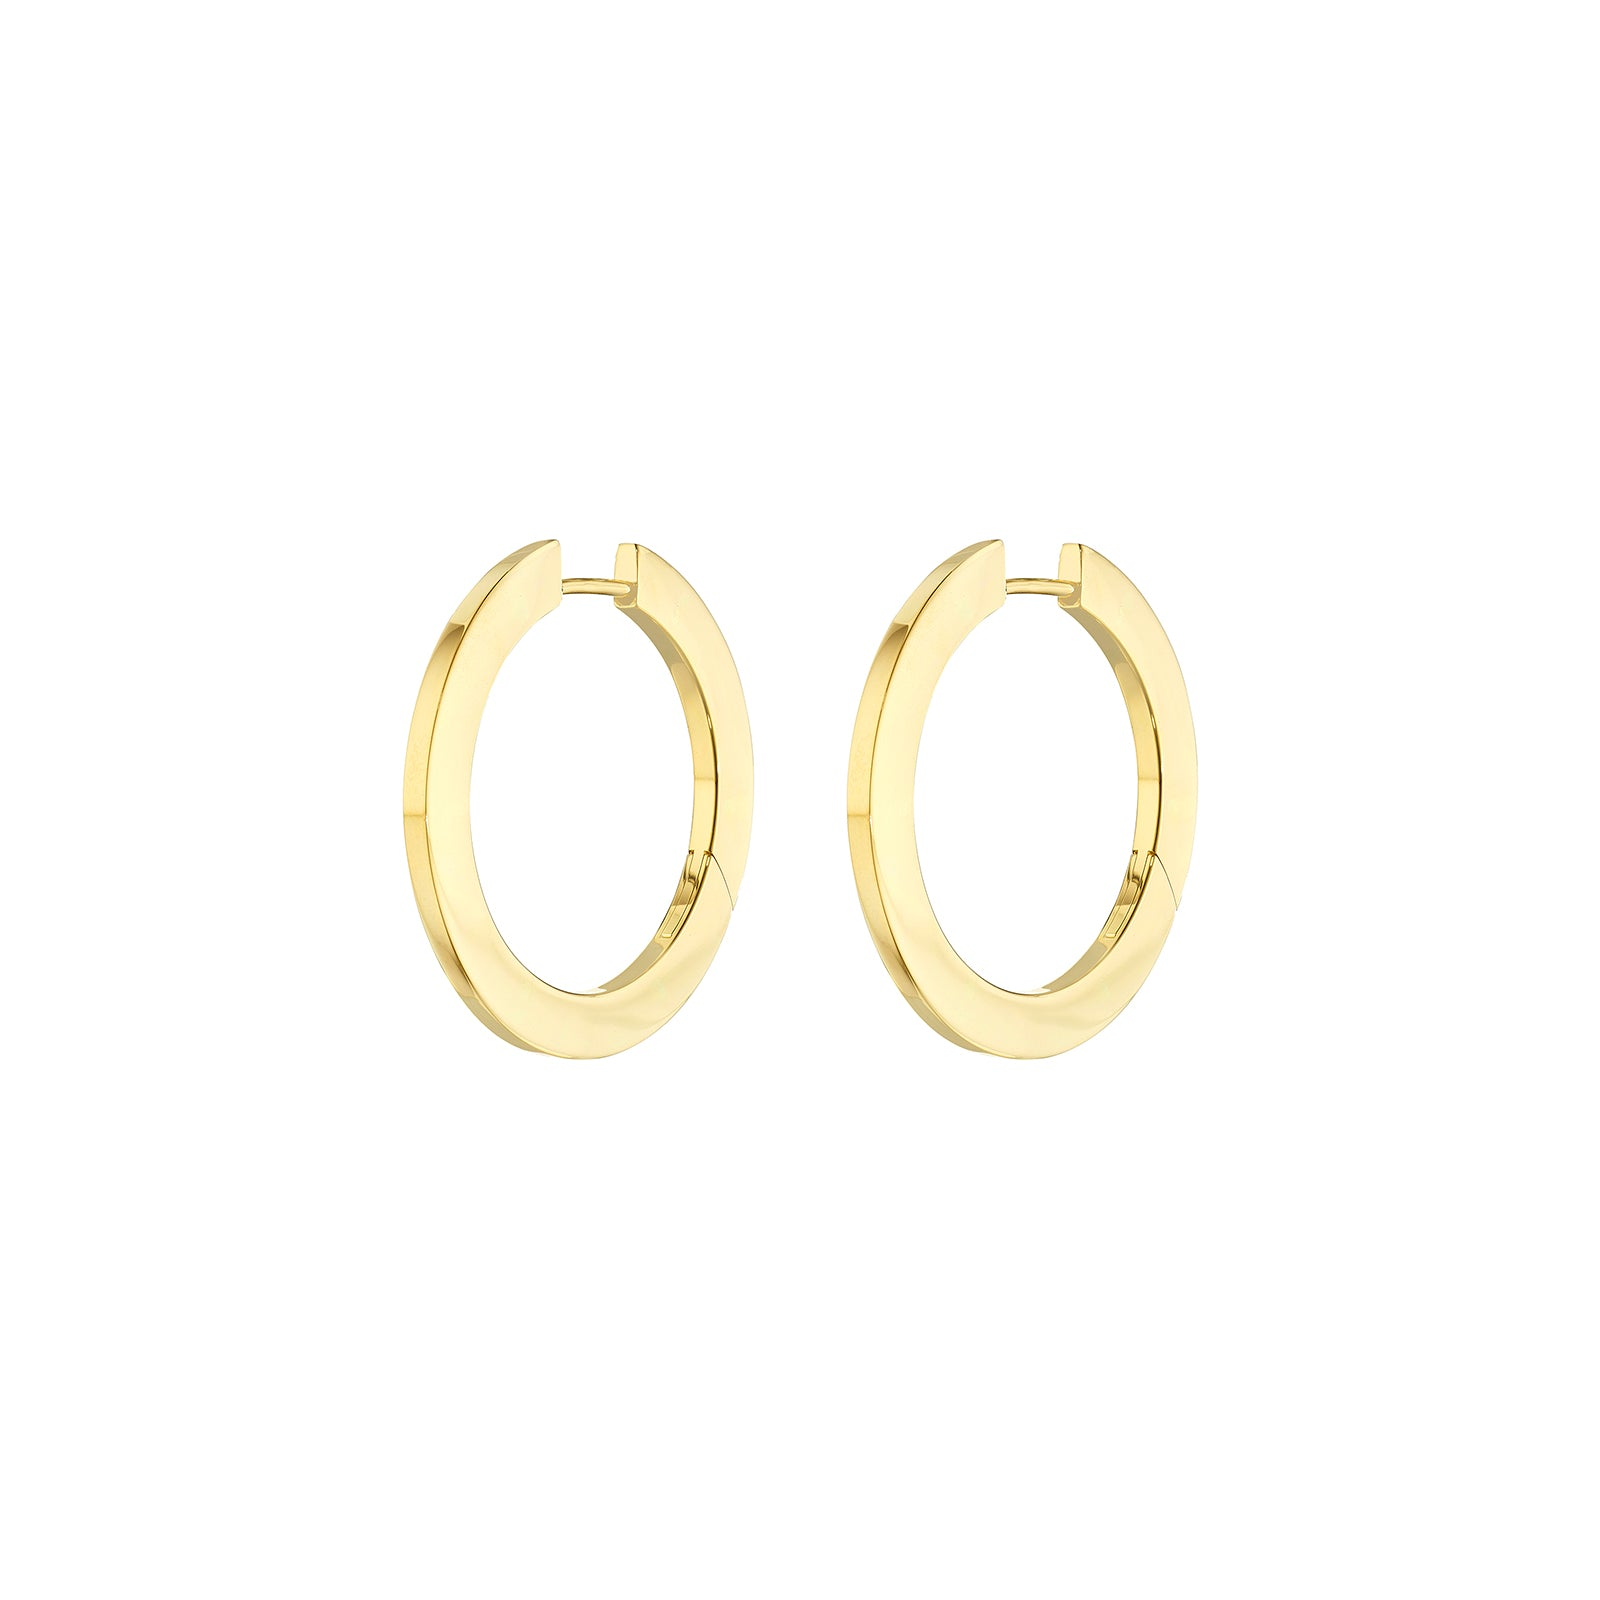 Cadar Plain Hoops - Medium - Earrings - Broken English Jewelry